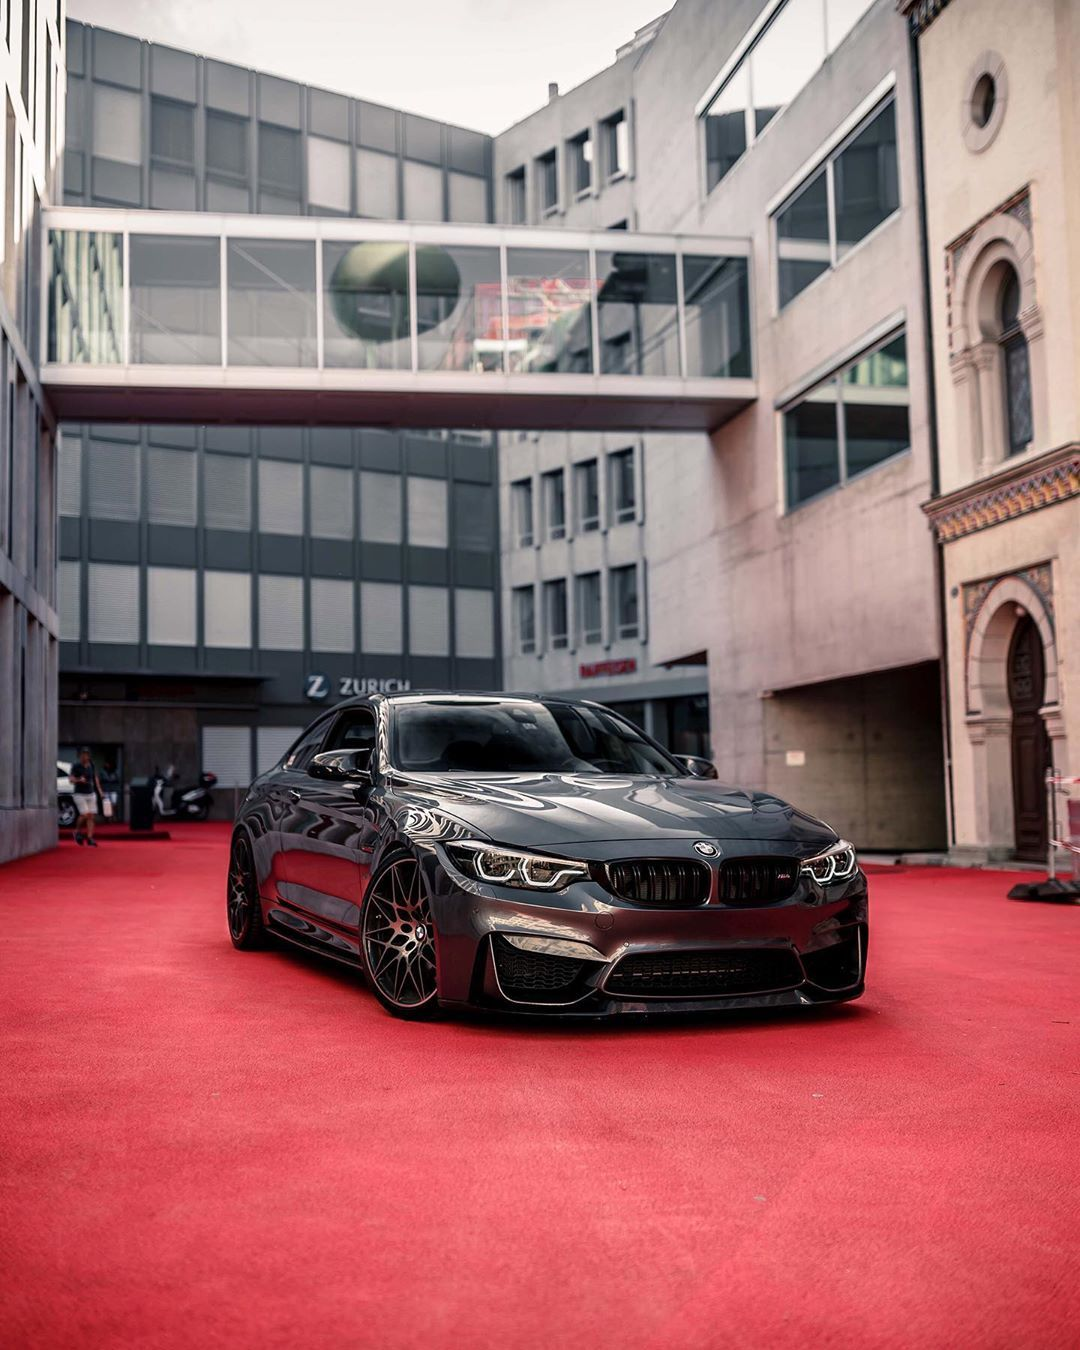 Bmw On Instagram The Red Carpet Has Been Rolled Out For The Ambassador Of Power The Bmw M4 Coupe Them4 Bmw M4 Bmwm B Bmw M4 Coupe Bmw Best Luxury Cars